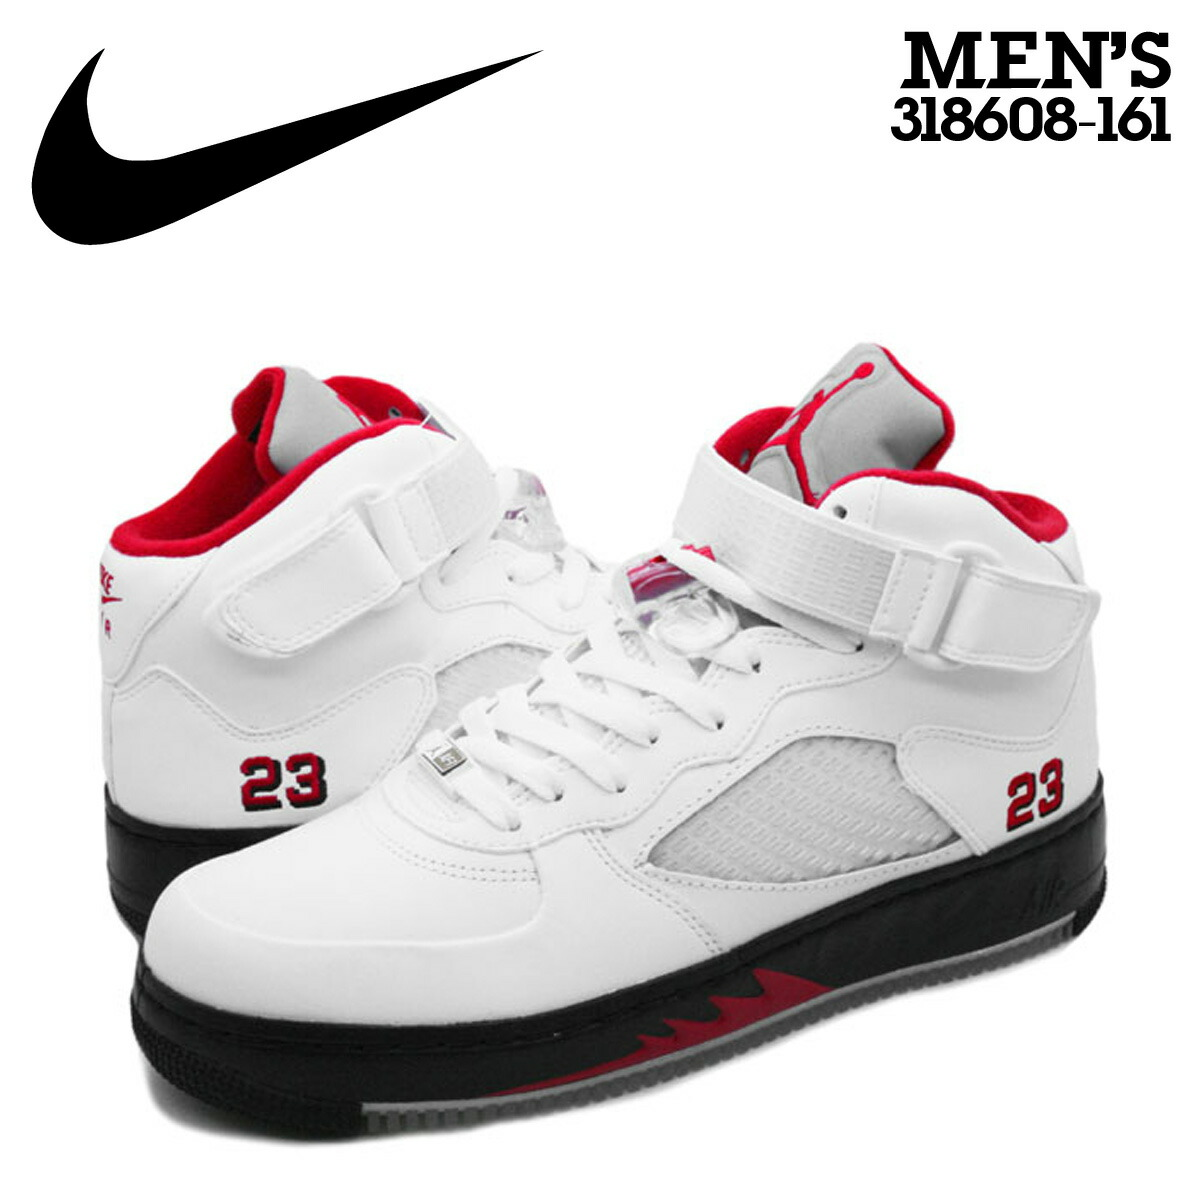 get lebron sneakers for 50 dollars